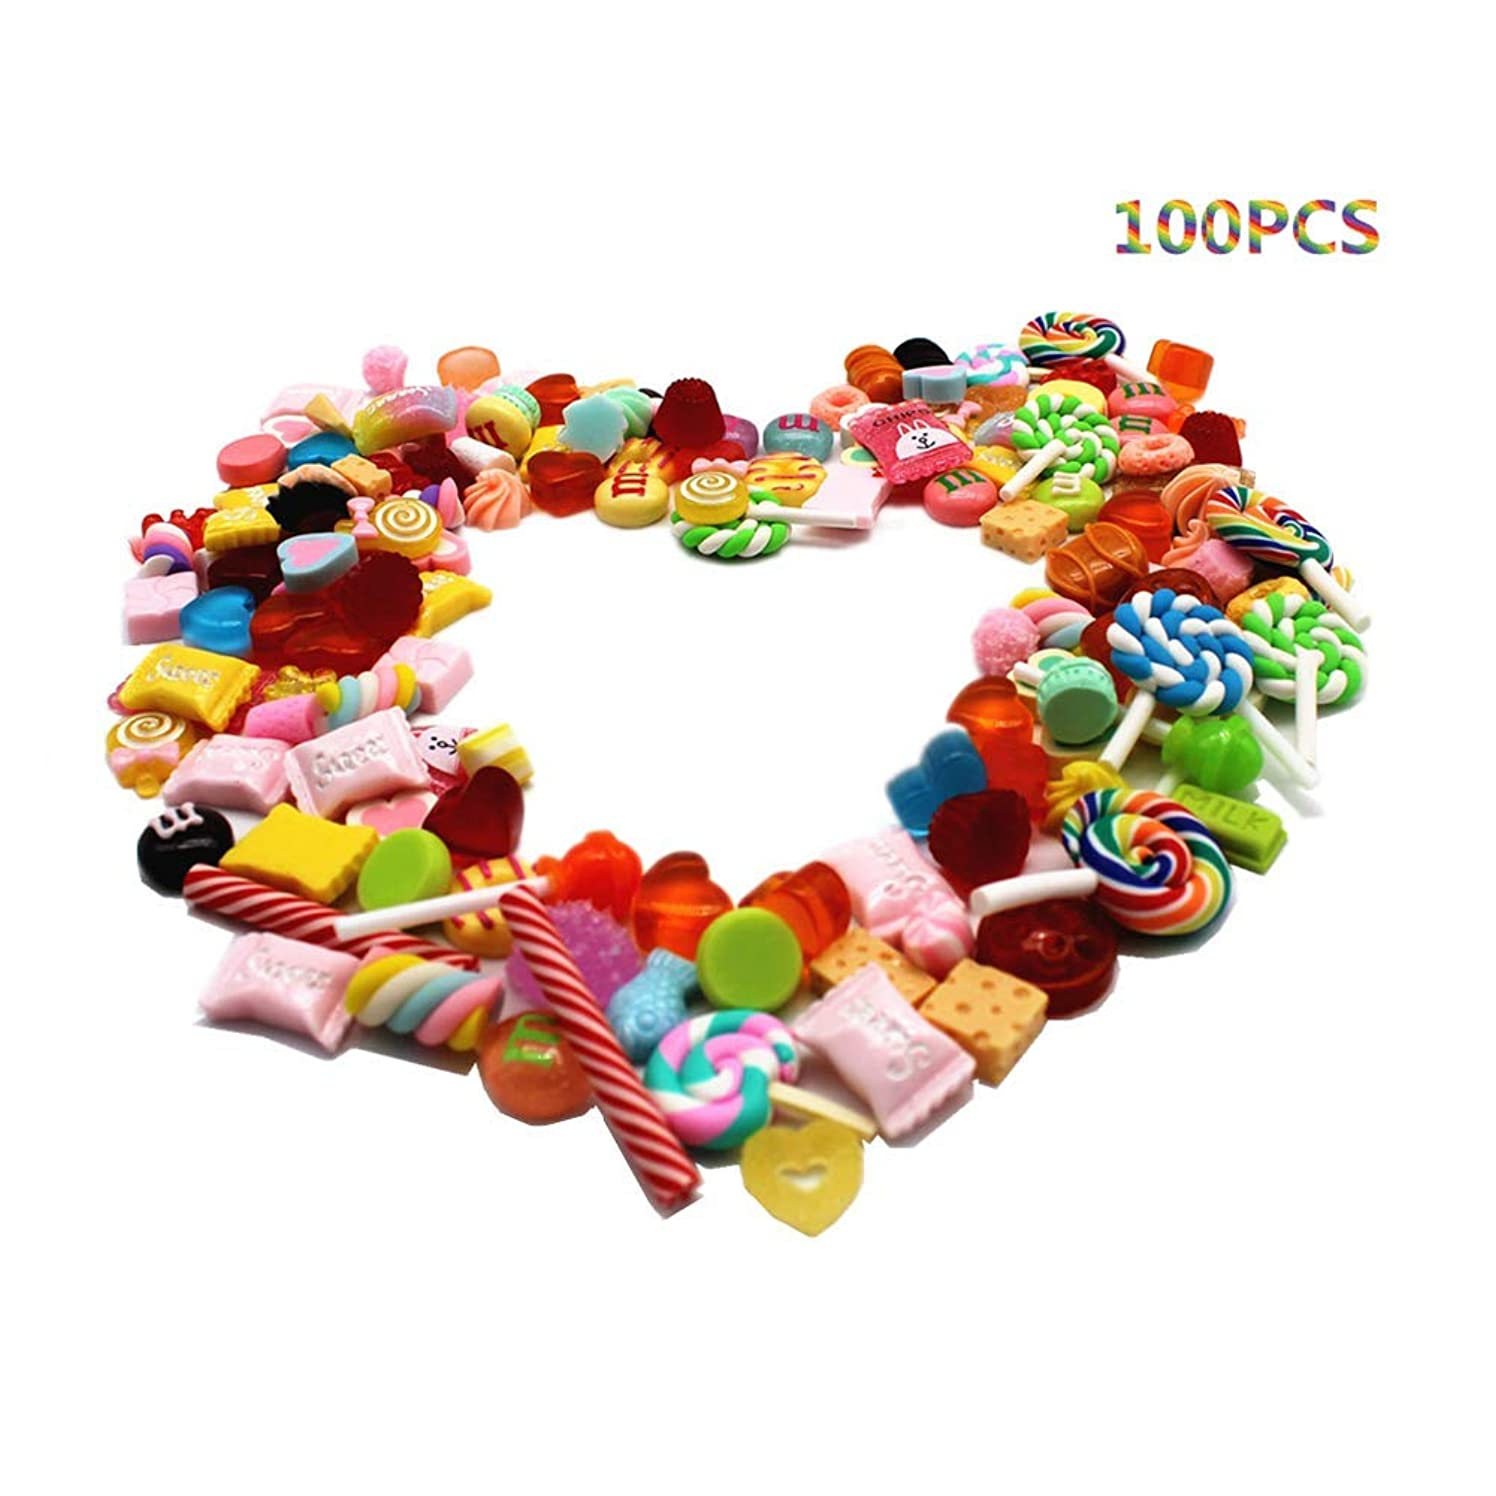 100pcs Cute Slime Charms Variety of Candies Sweets Assorted Colors and Shapes Stuff Resin Flat Back Embellishments for DIY Scrapbooking Crafts